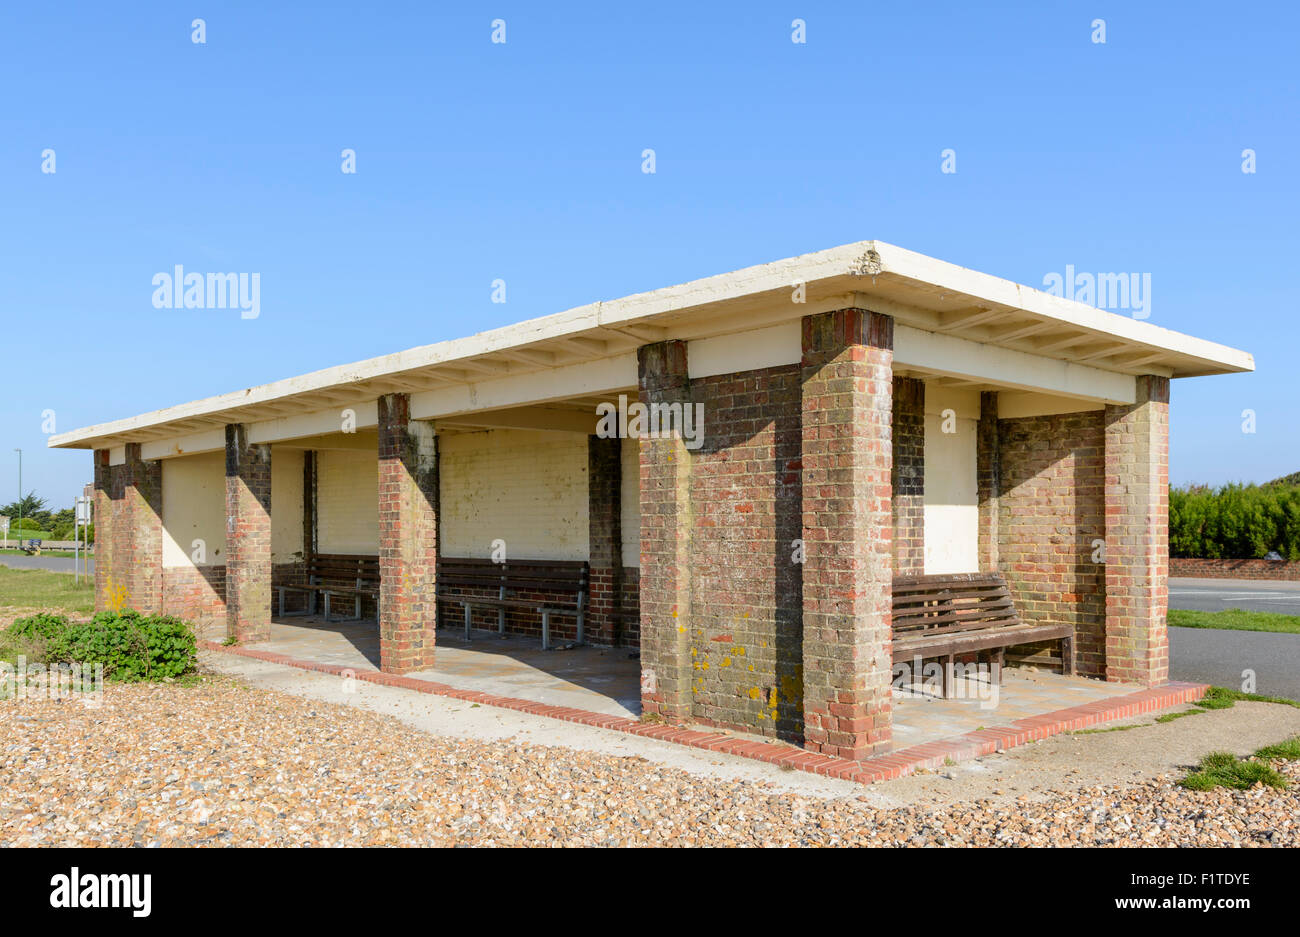 Brick shelter along the promenade by the seafront in Littlehampton, West Sussex, England, UK. - Stock Image